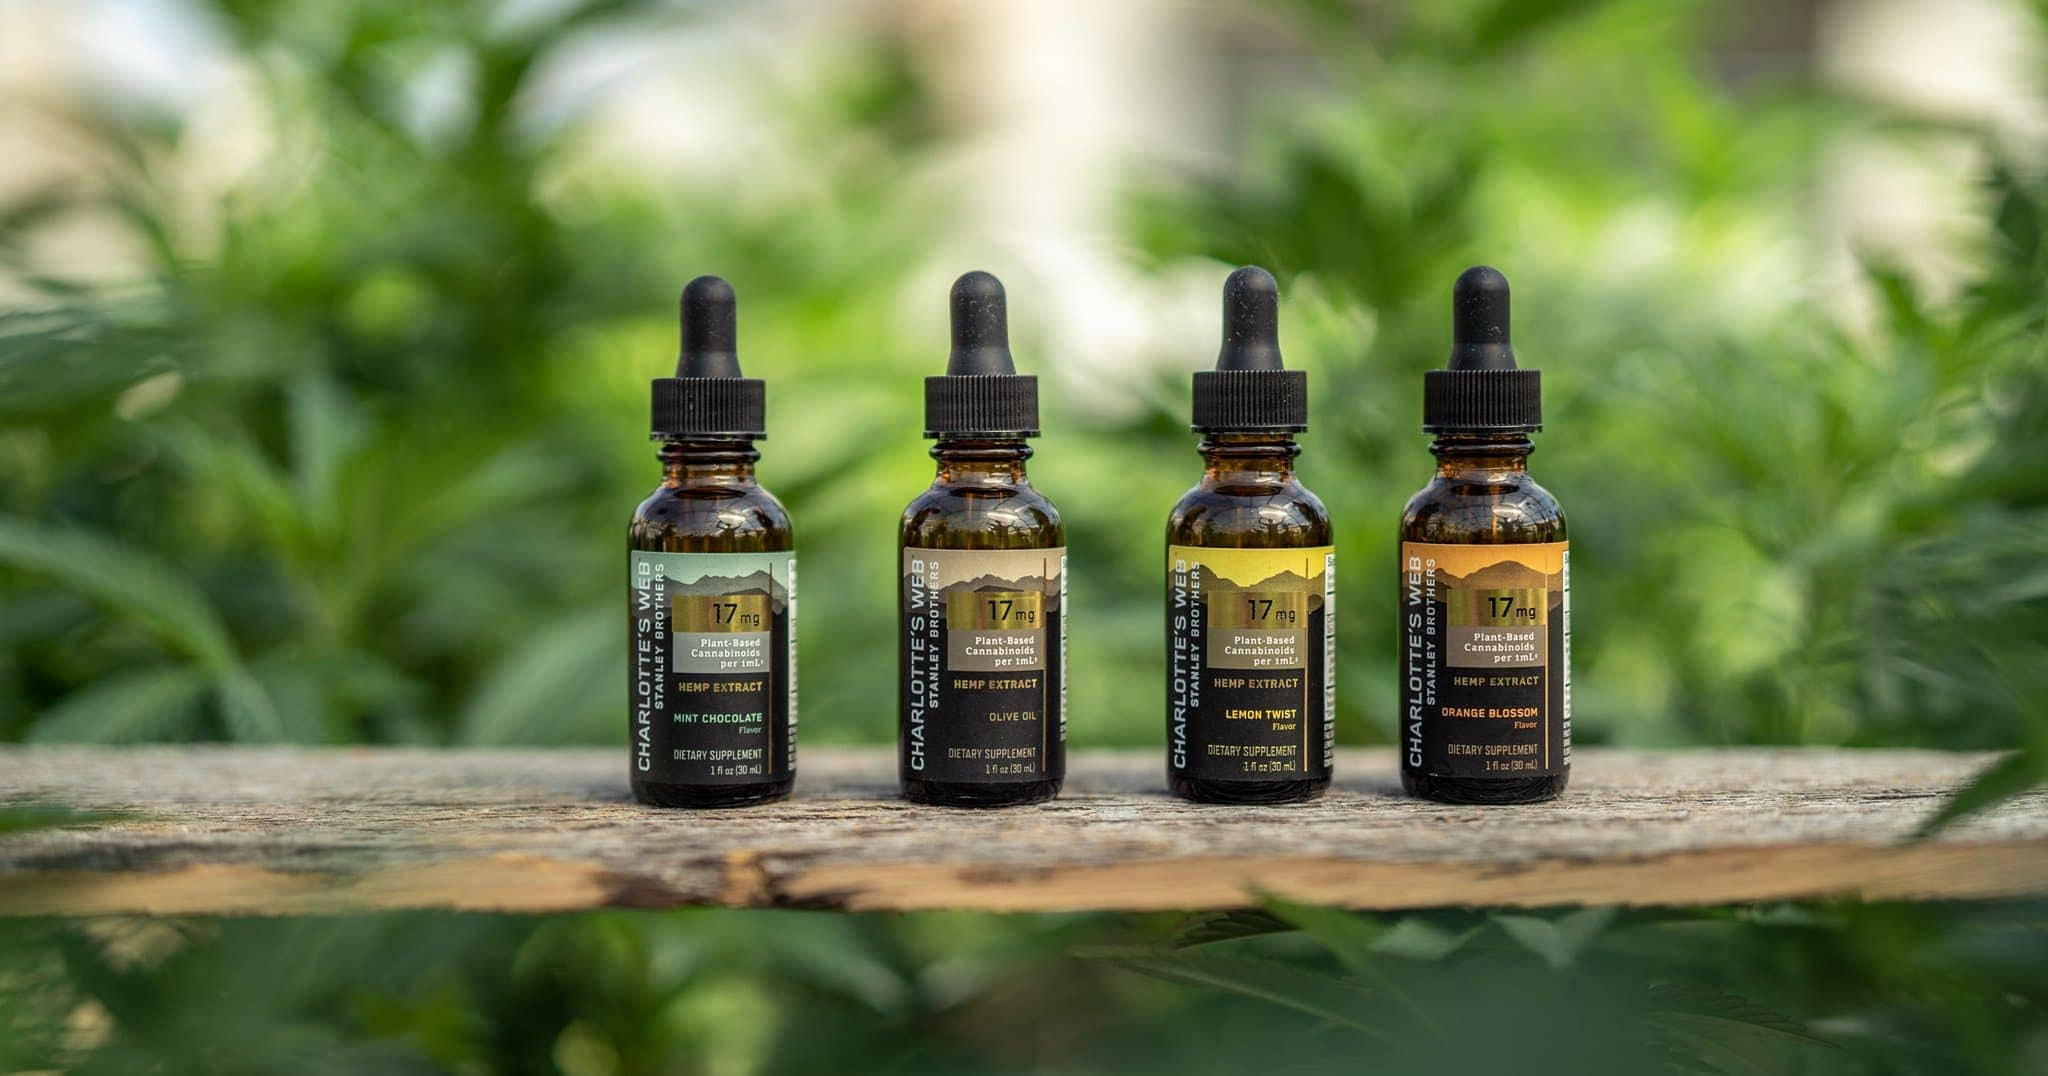 Charlotte's Web CBD oils and tinctures